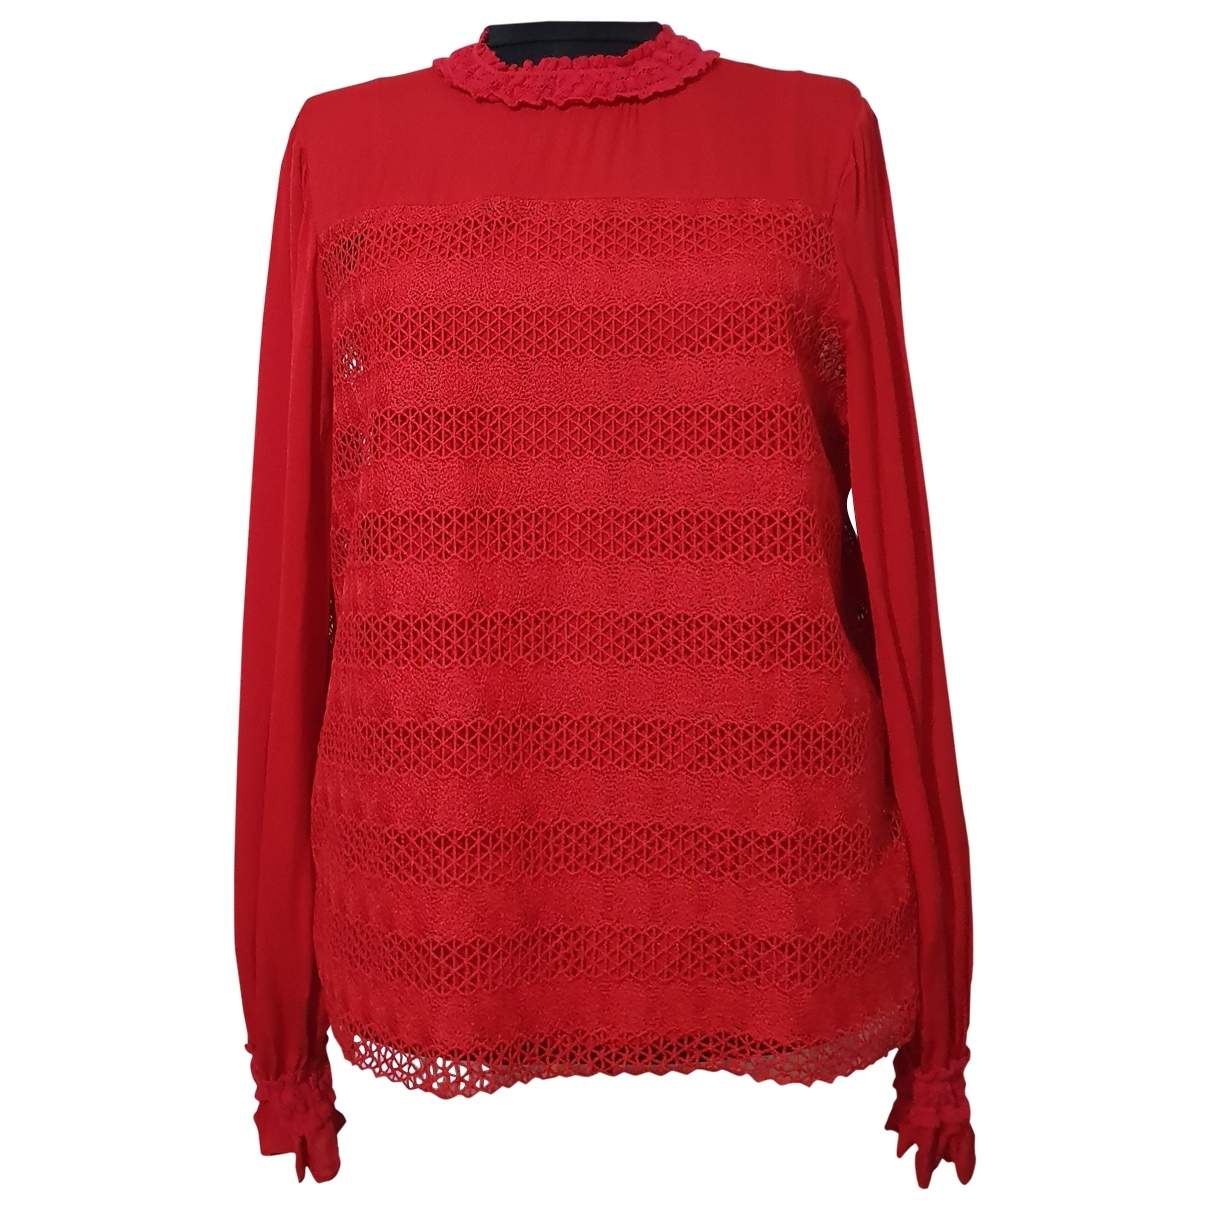 Maje \N Red  top for Women L International